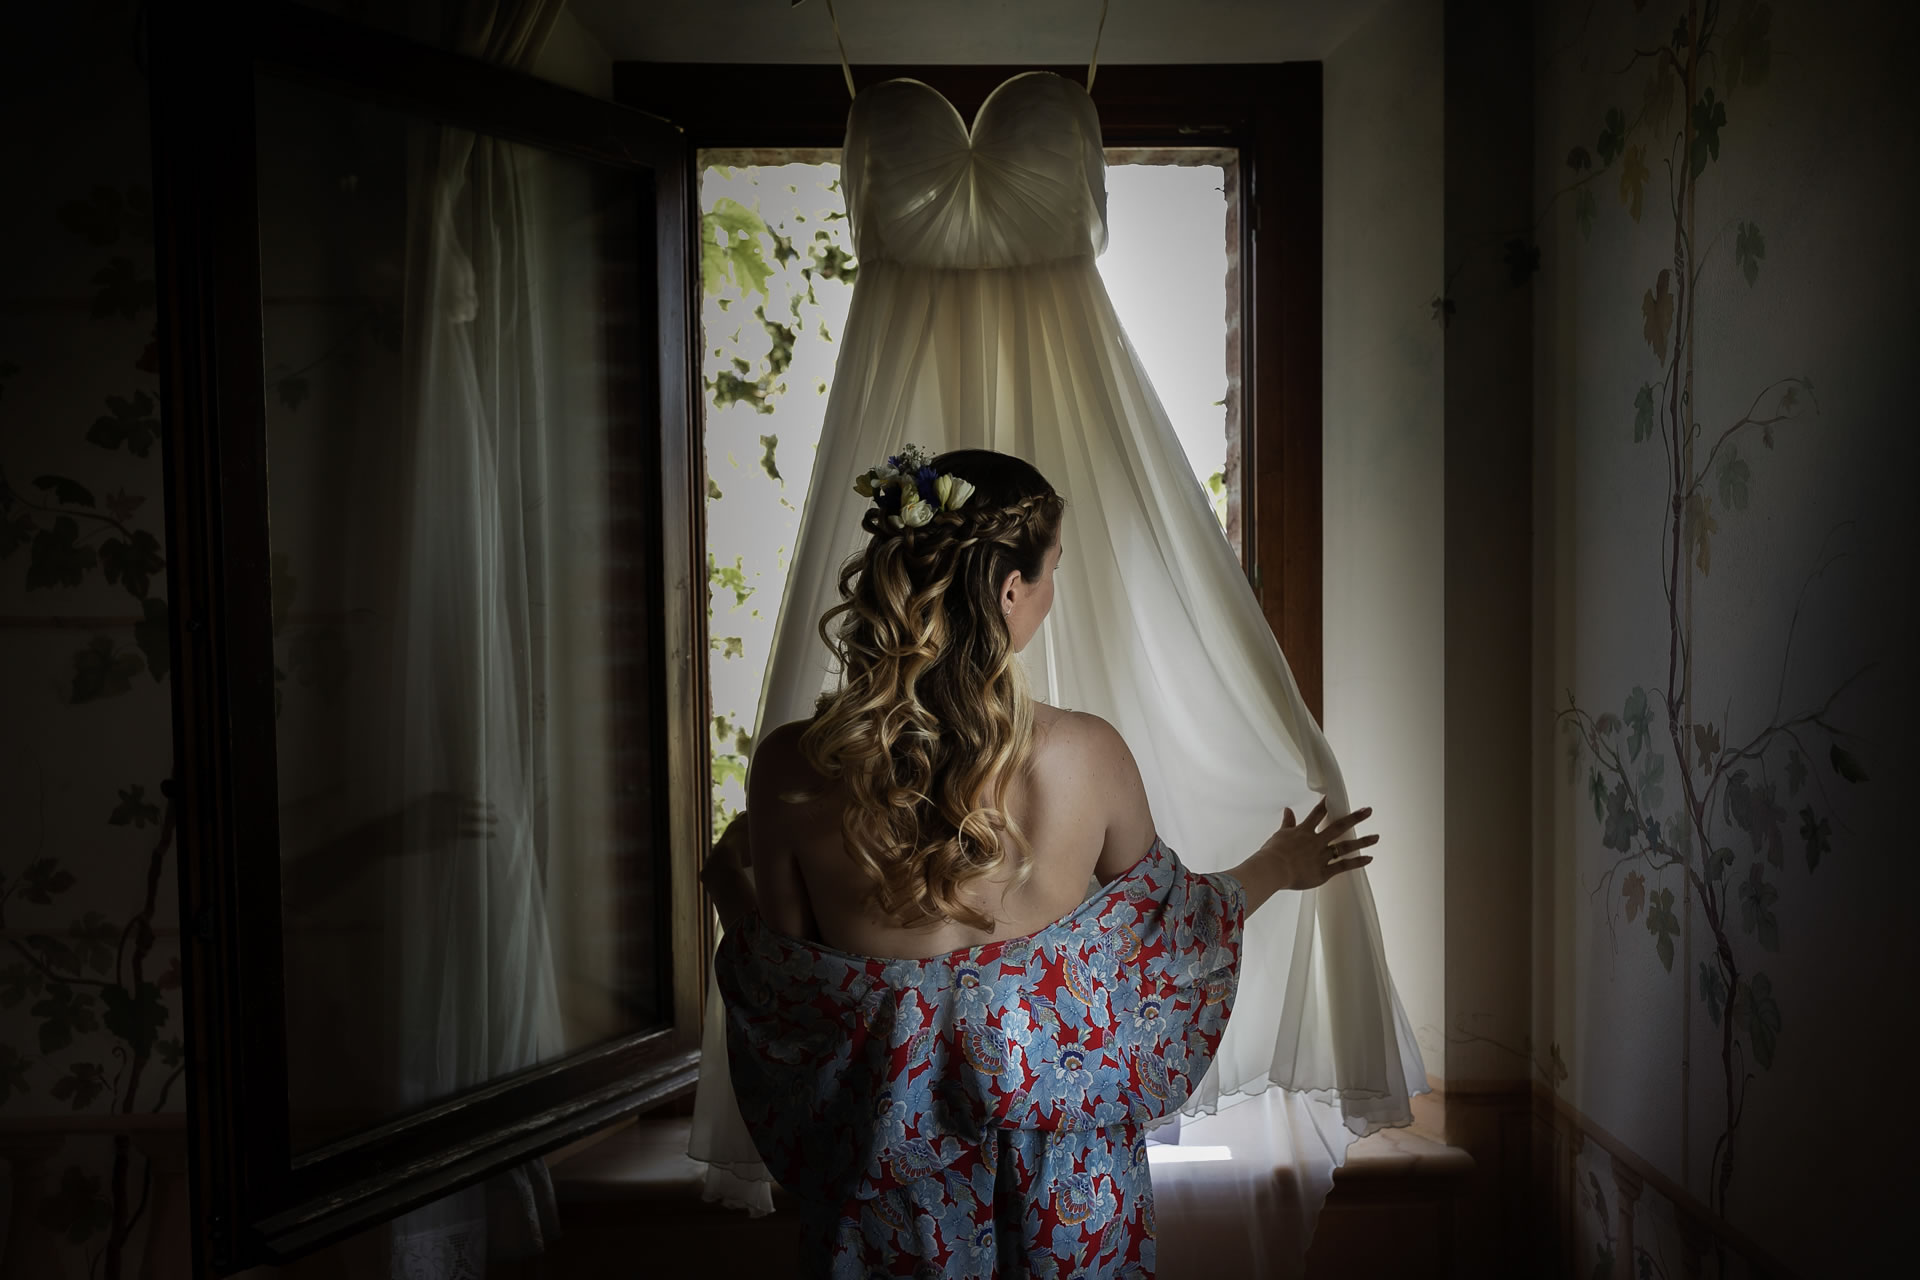 Curly Hair - 11 :: Wedding in Perugia countryside. Jean and Toby :: Luxury wedding photography - 10 :: Curly Hair - 11